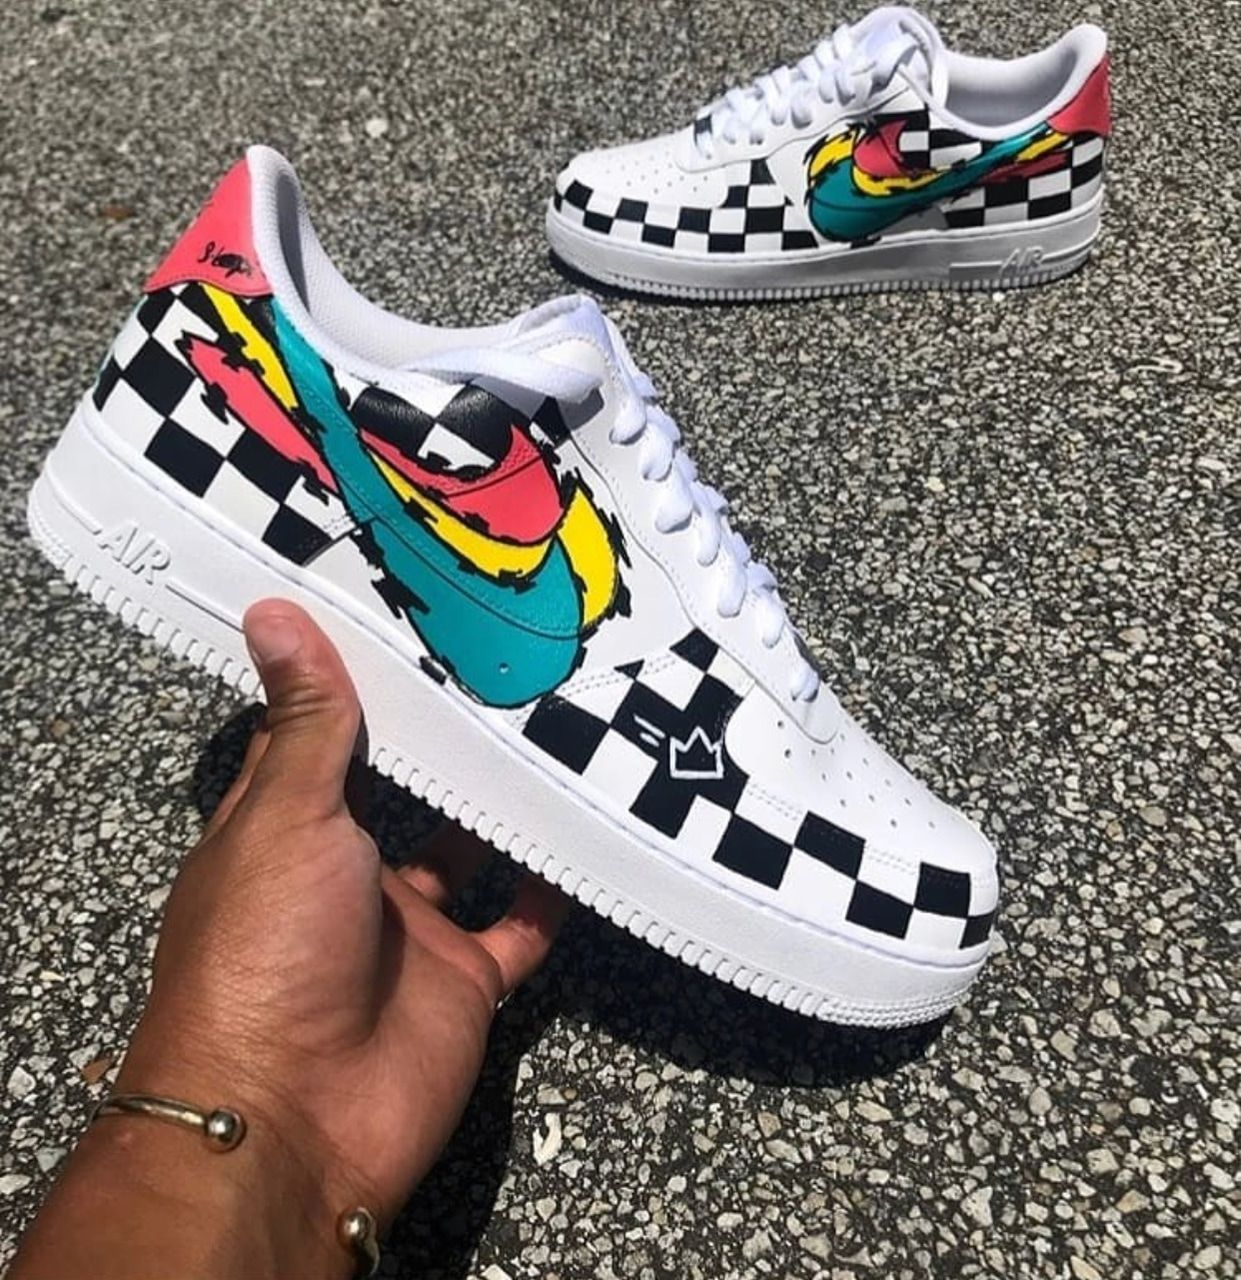 Pin By Anna Bellefeuille On Kick Nike Air Shoes Custom Nike Shoes Nike Shoes Air Force